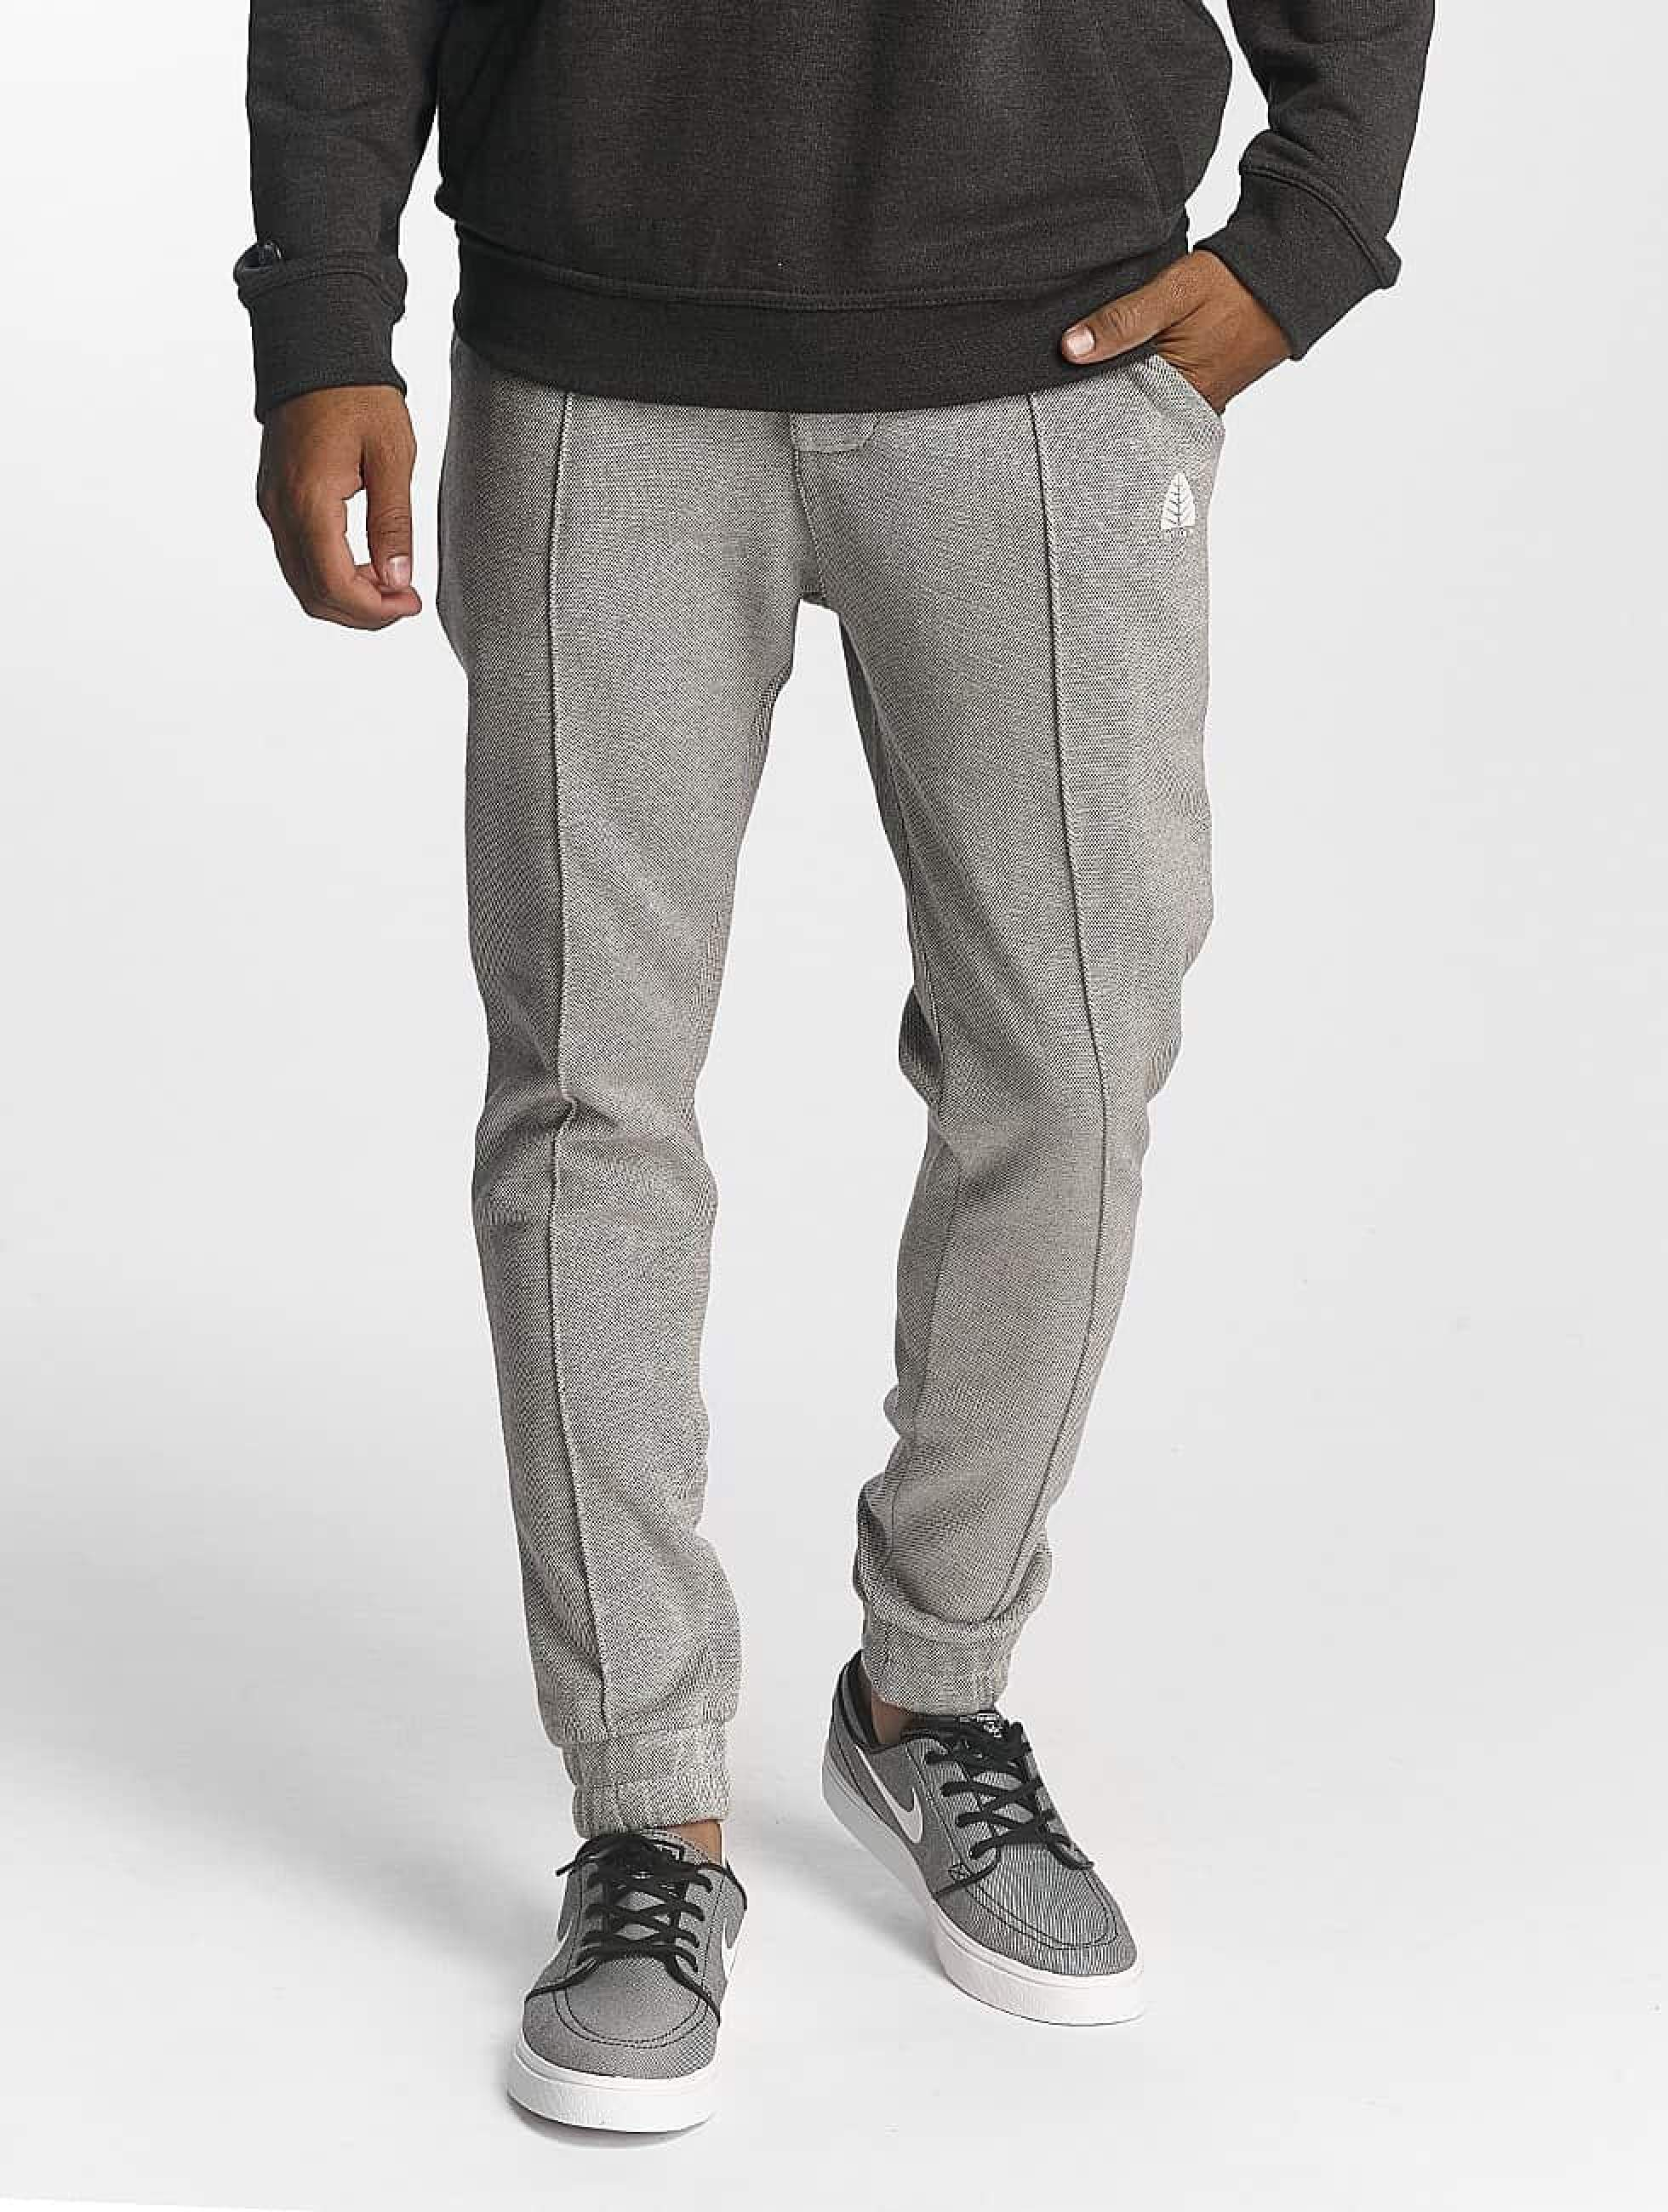 Just Rhyse / Sweat Pant Tongras in grey L